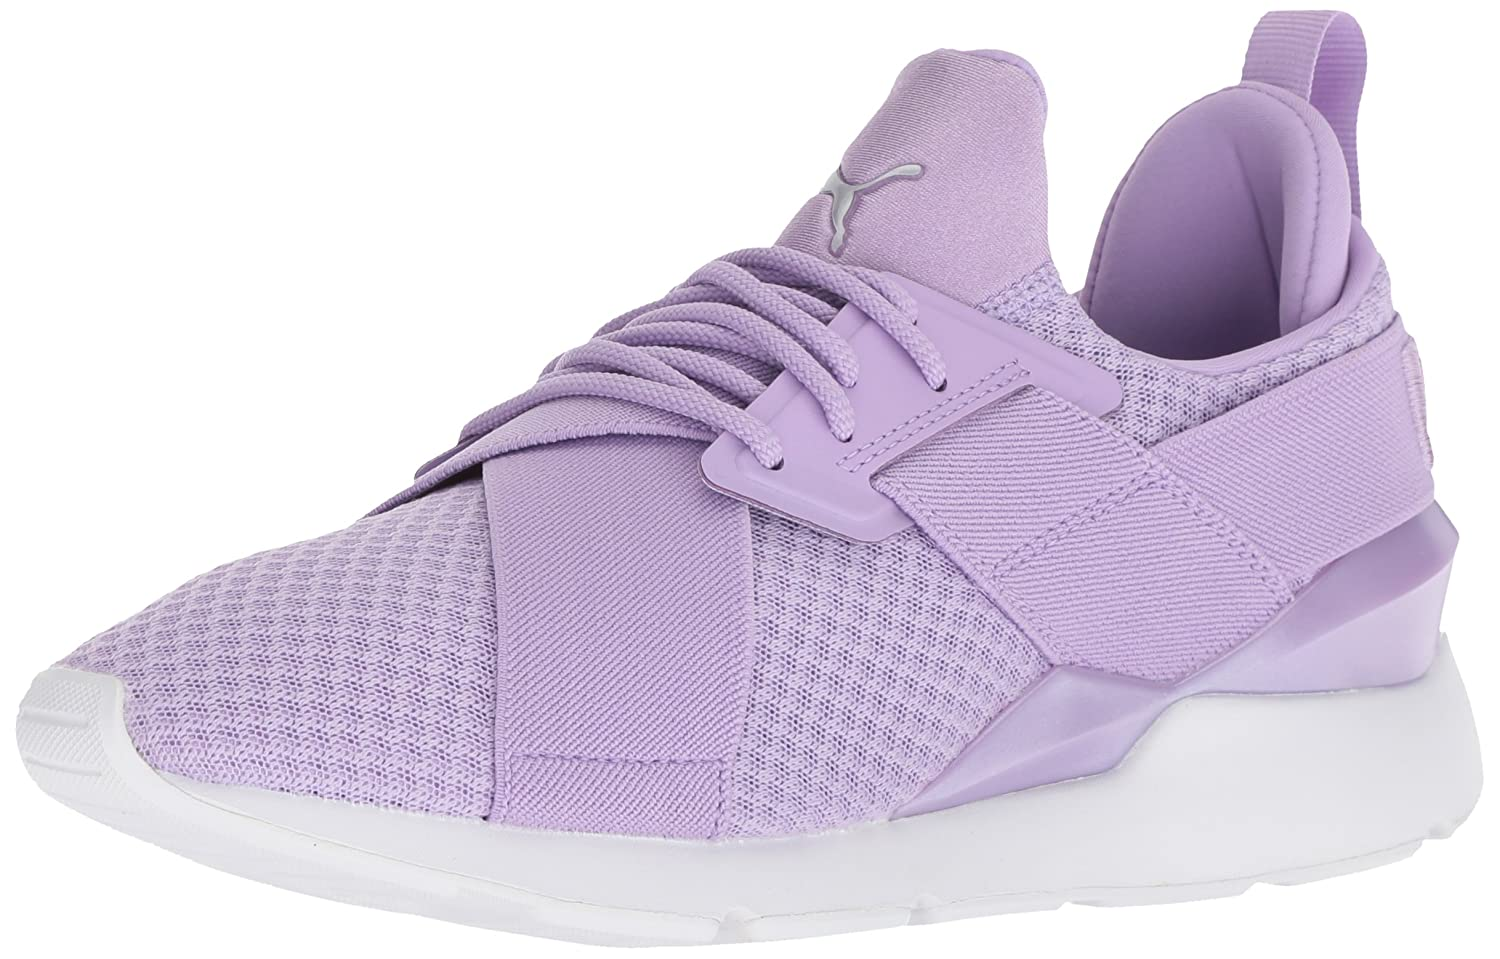 PUMA Women's Muse En Pointe WN's Sneaker B076KRYSGD 9.5 M US|Purple Rose-puma White